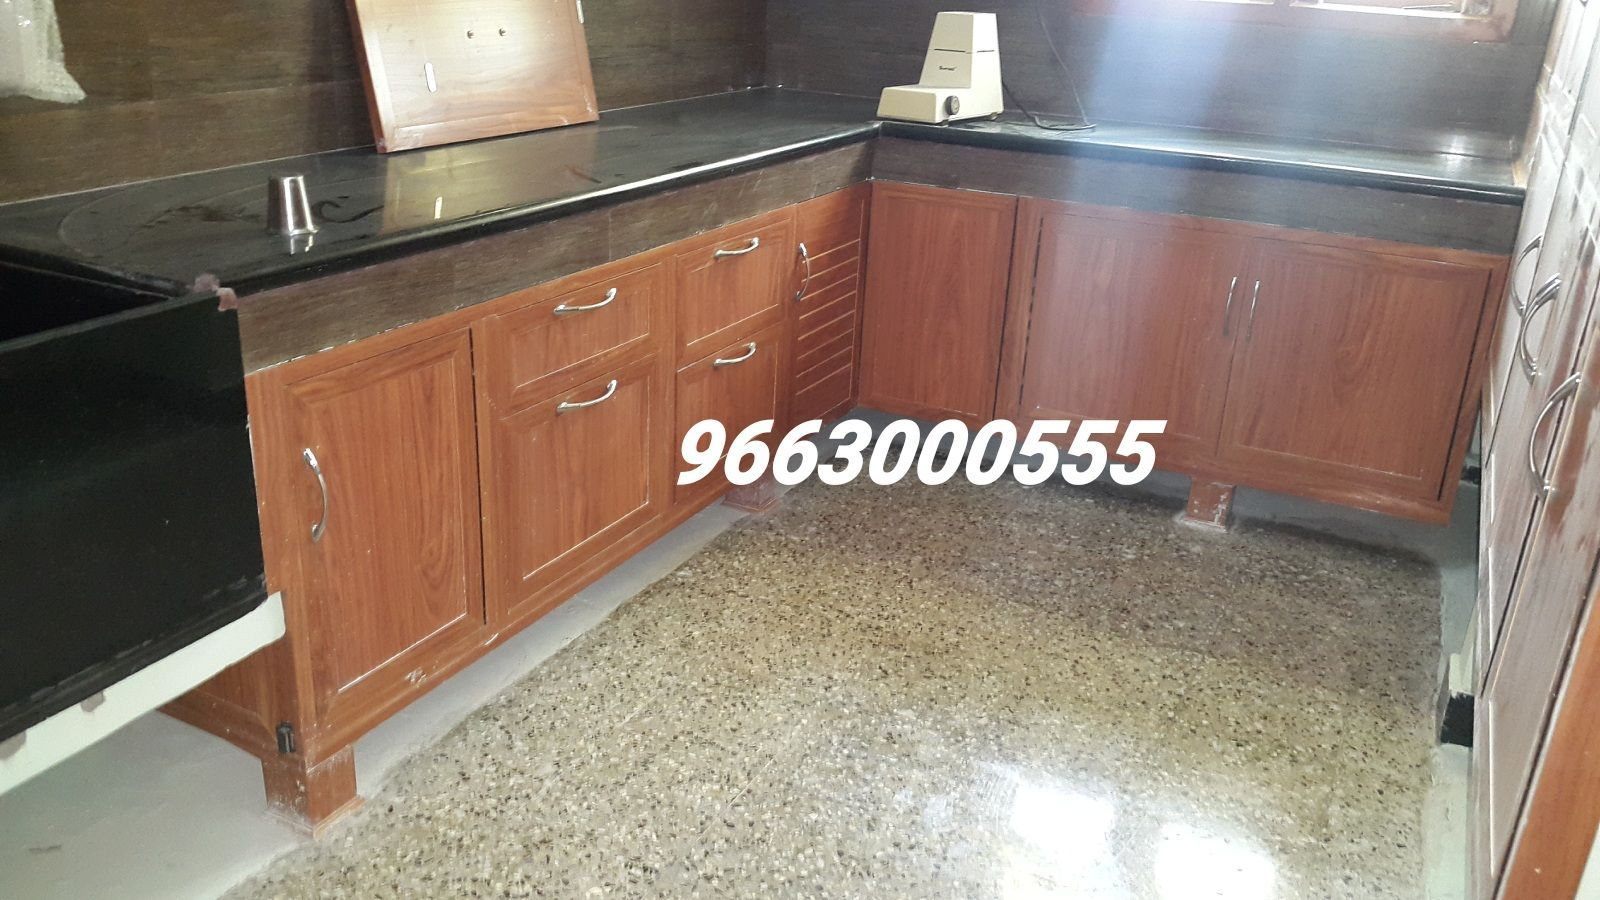 pvc kitchen cabinets in bangalore